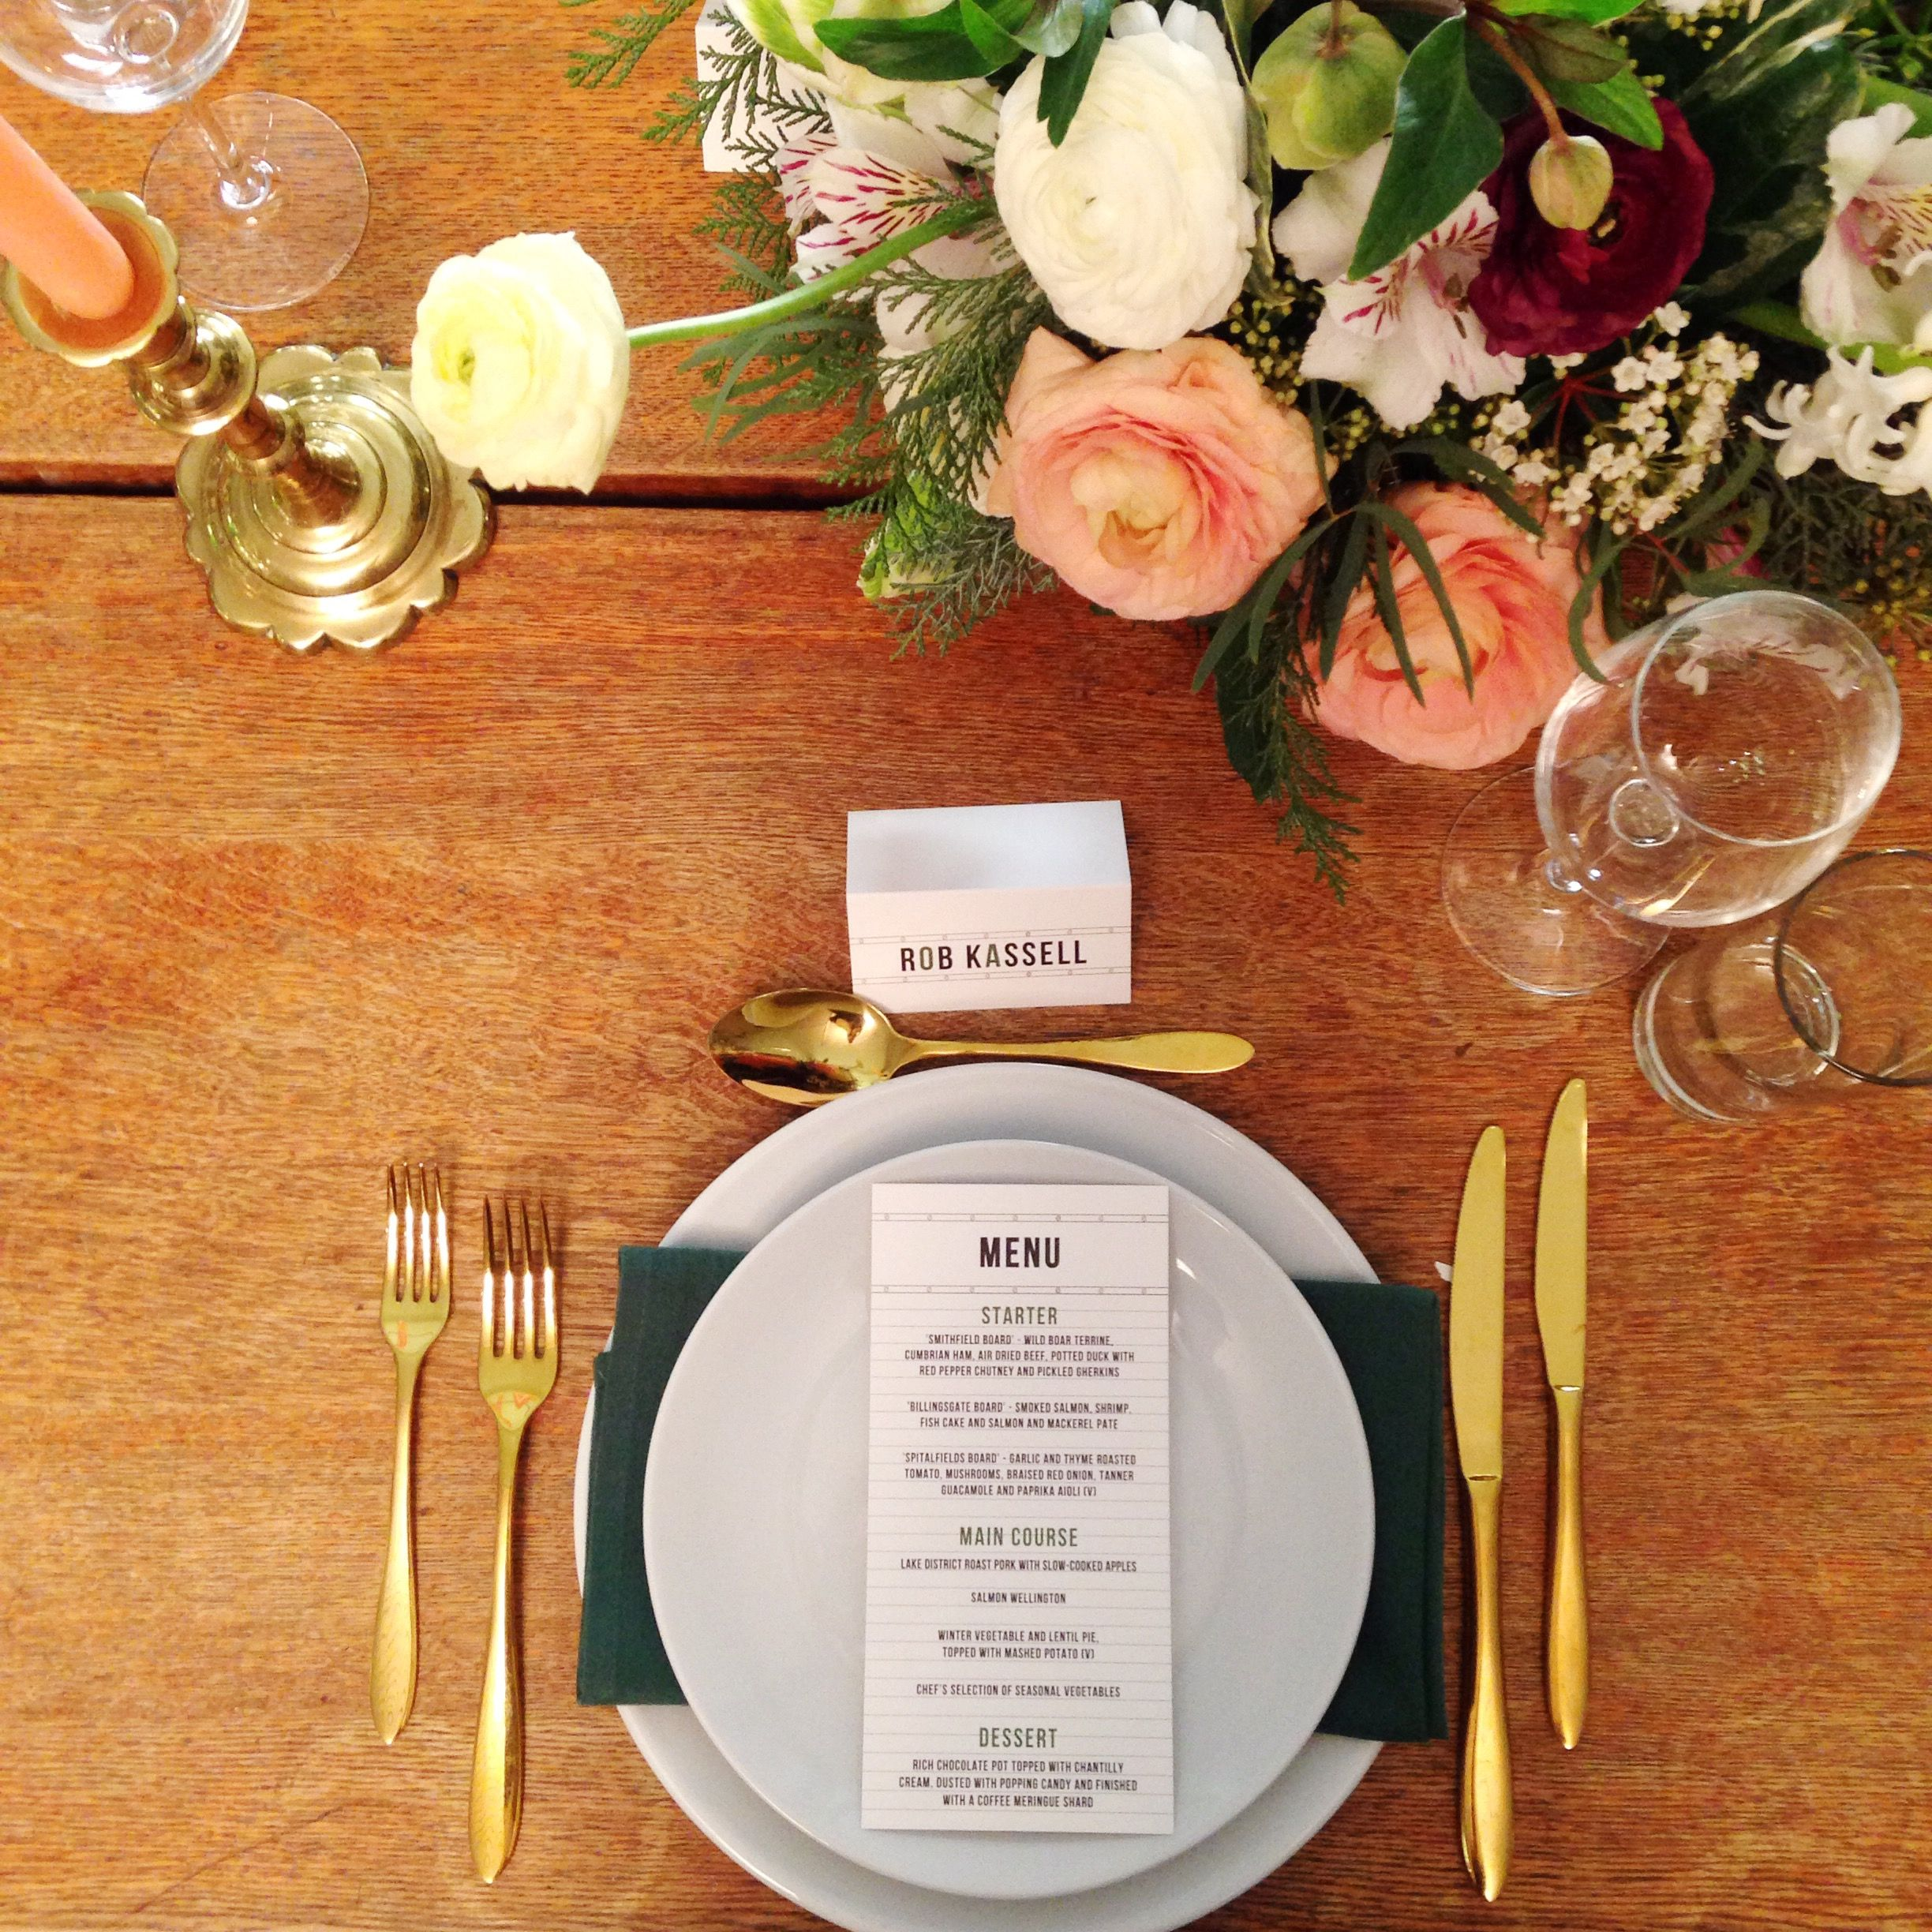 Gold Cutlery And Beautiful Flowers At Tanner Warehouse A Unique Venue Situated On Vibrant Bermondsey Street In South East London This Space Is Unrivalled